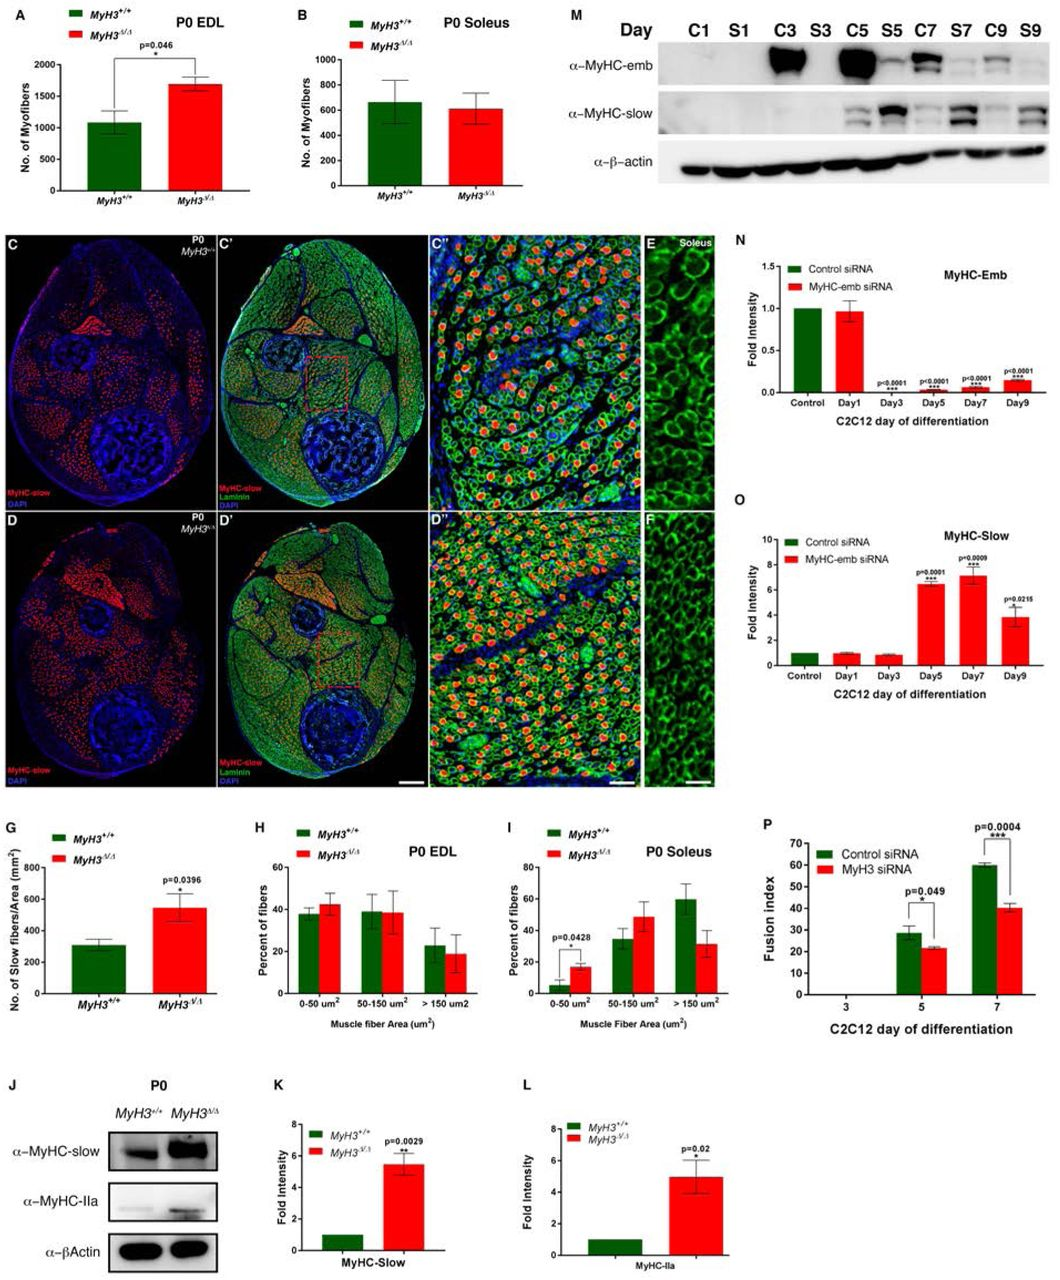 Loss of MyHC-embryonic function leads to myogenic differentiation defects in vivo and vitro. At postnatal day 0, the number of myofibers are significantly increased in the EDL muscle in the hind limbs of MyH3 Δ/Δ animals compared to MyH3 +/+ animals (A), while no significant difference in the number of myofibers is observed in the case of the soleus muscle (B). MyHC-slow positive fibers are increased in P0 MyH3 Δ/Δ animal hind limb cross sections (D, D'), compared to MyH3 +/+ control animals (C, C'), where the sections are labeled by immunofluorescence for MyHC-slow (Red), Laminin (Green) and DAPI (Blue). C'' and D'' are magnified regions of the boxed area of MyH3 +/+ and MyH3 Δ/Δ P0 hind limb cross sections from C' and D' respectively. The elevated number of MyHC-slow+ fibers in P0 MyH3 Δ/Δ hind limb cross sections compared to MyH3 +/+ controls was quantified normalized to total area and is statistically significant (G). The myofiber size was found to be smaller in the soleus muscle of MyH3 Δ/Δ animals (F) as compared to MyH3 +/+ animals (E). The myofiber area of myofibers of the EDL and soleus muscles at P0 were quantified, grouping myofibers into 3 categories by area, 0-50 μm 2 , 50-150 μm 2 and above 150 μm 2 . It was found that the number of myofibers in the 0-50 μm 2 group was increased significantly in the soleus muscle of MyH3 Δ/Δ animals compared to controls (I), but was unchanged in the EDL (H). Protein levels of MyHC-slow and MyHC-IIa are about 5-fold upregulated in the MyH3 Δ/Δ animals compared to MyH3 +/+ animals by western blots (J), which is quantified by densitometry (K and L). MyHC-emb protein levels are significantly reduced upon treatment of C2C12 cells with MyH3 siRNA compared to control siRNA over 9 days of differentiation as detected by western blots and densitometry (M and N), while protein levels of MyHC-slow are significantly increased from day 5 onwards reaching a peak of more than 6-fold increase by day 7 upon MyHC-emb knockdown as detecte